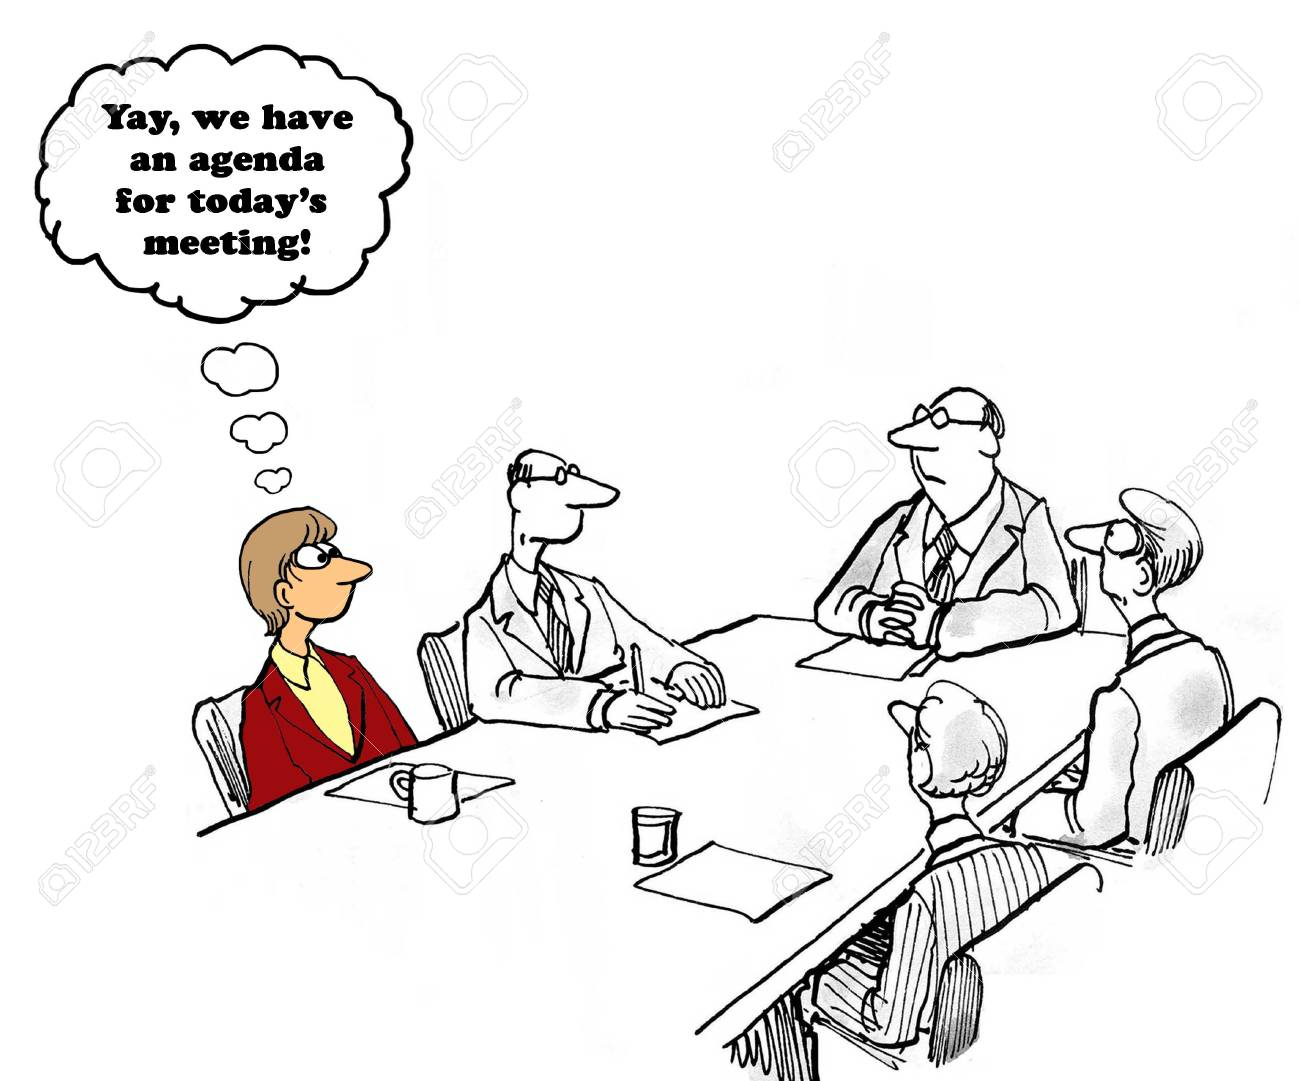 business cartoon about having a meeting agenda stock photo picture